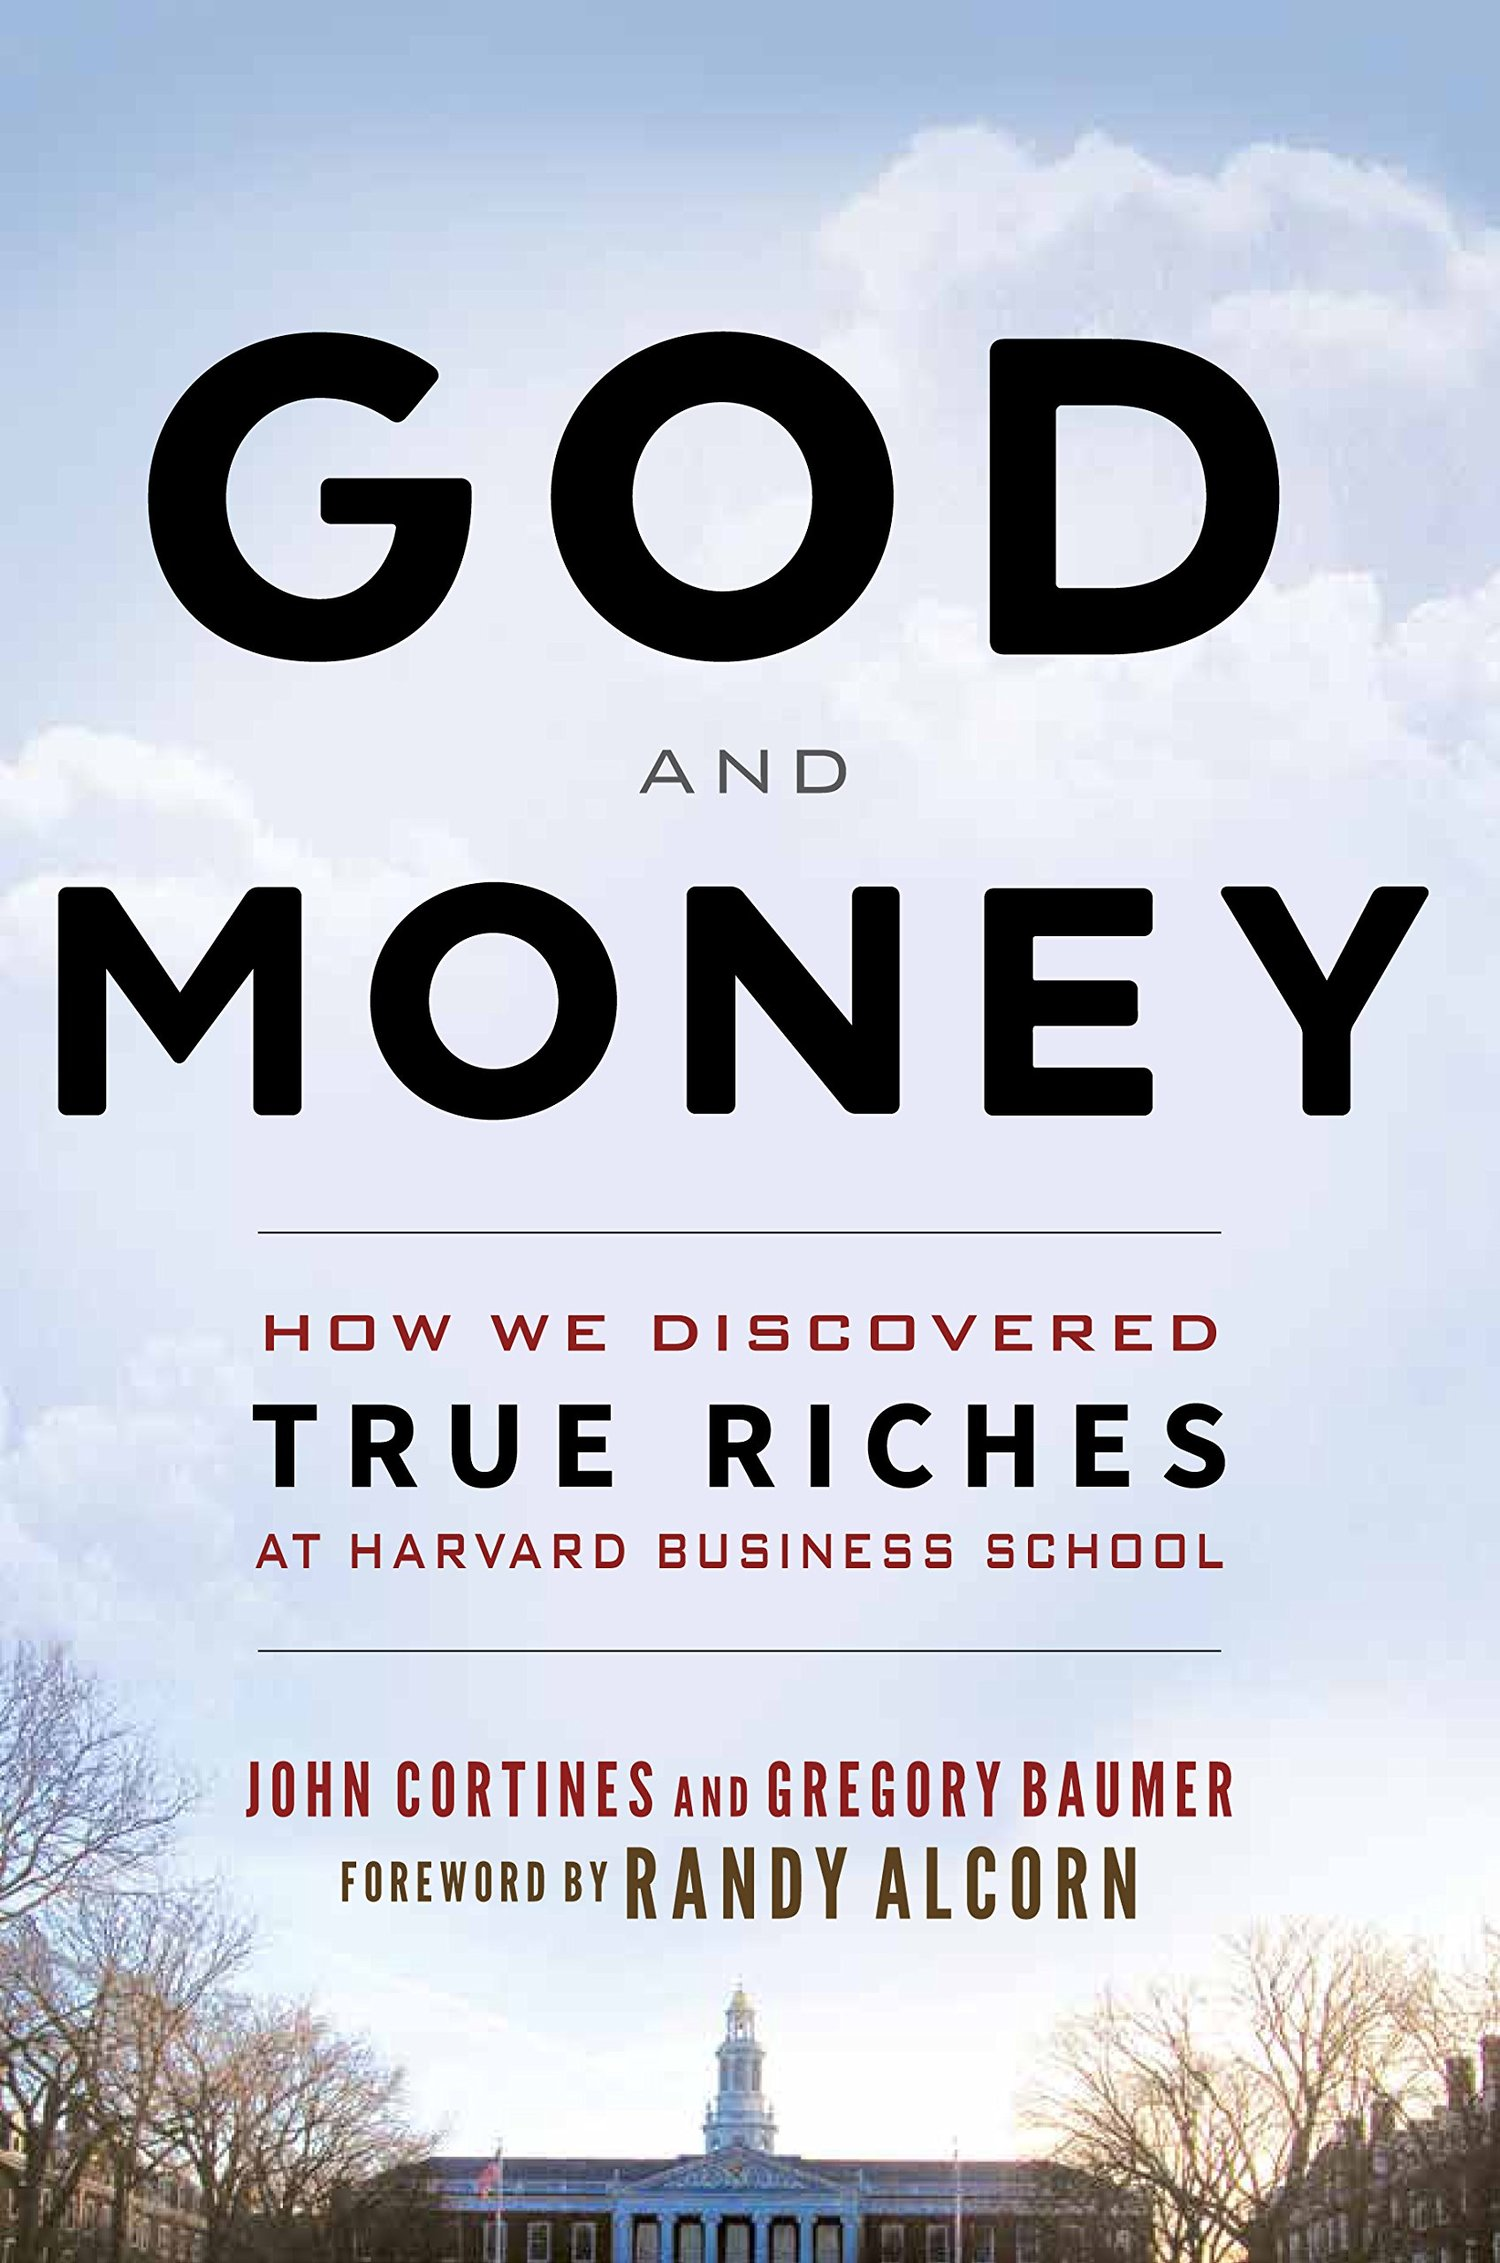 God and Money: How We Discovered True Riches at Harvard